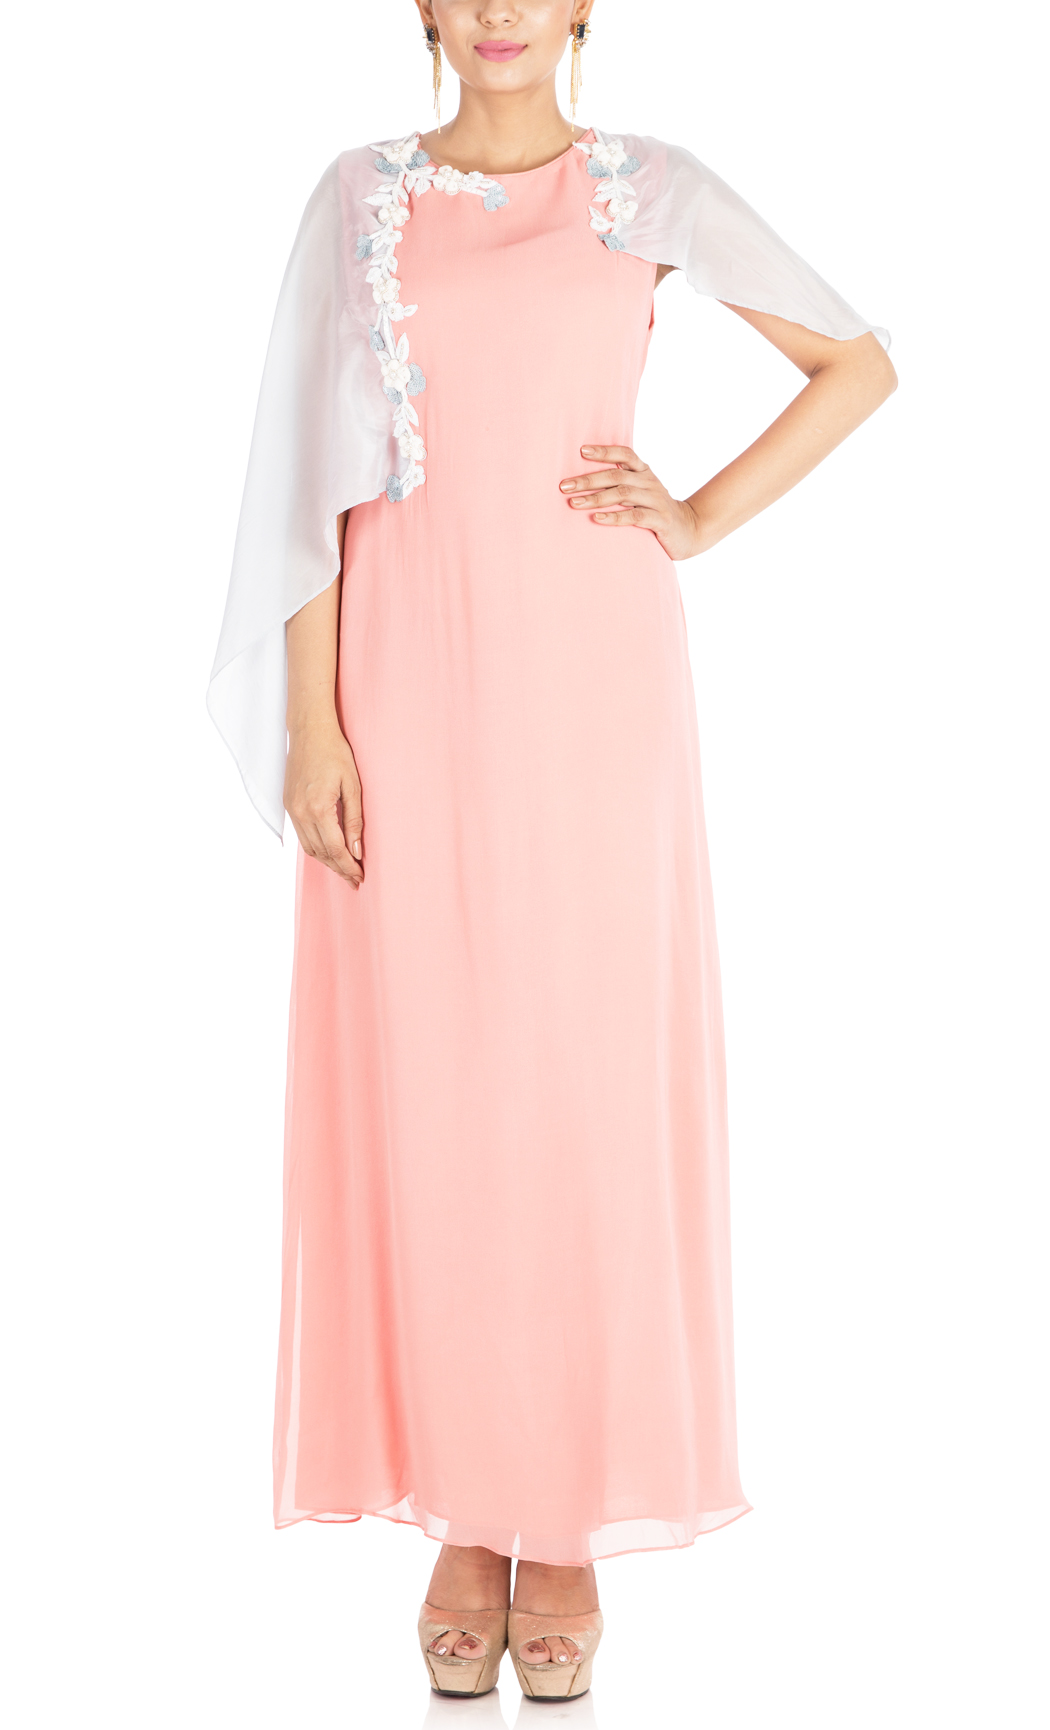 Peach Tunic with Embroidered Cape Sleeves - Buy Online